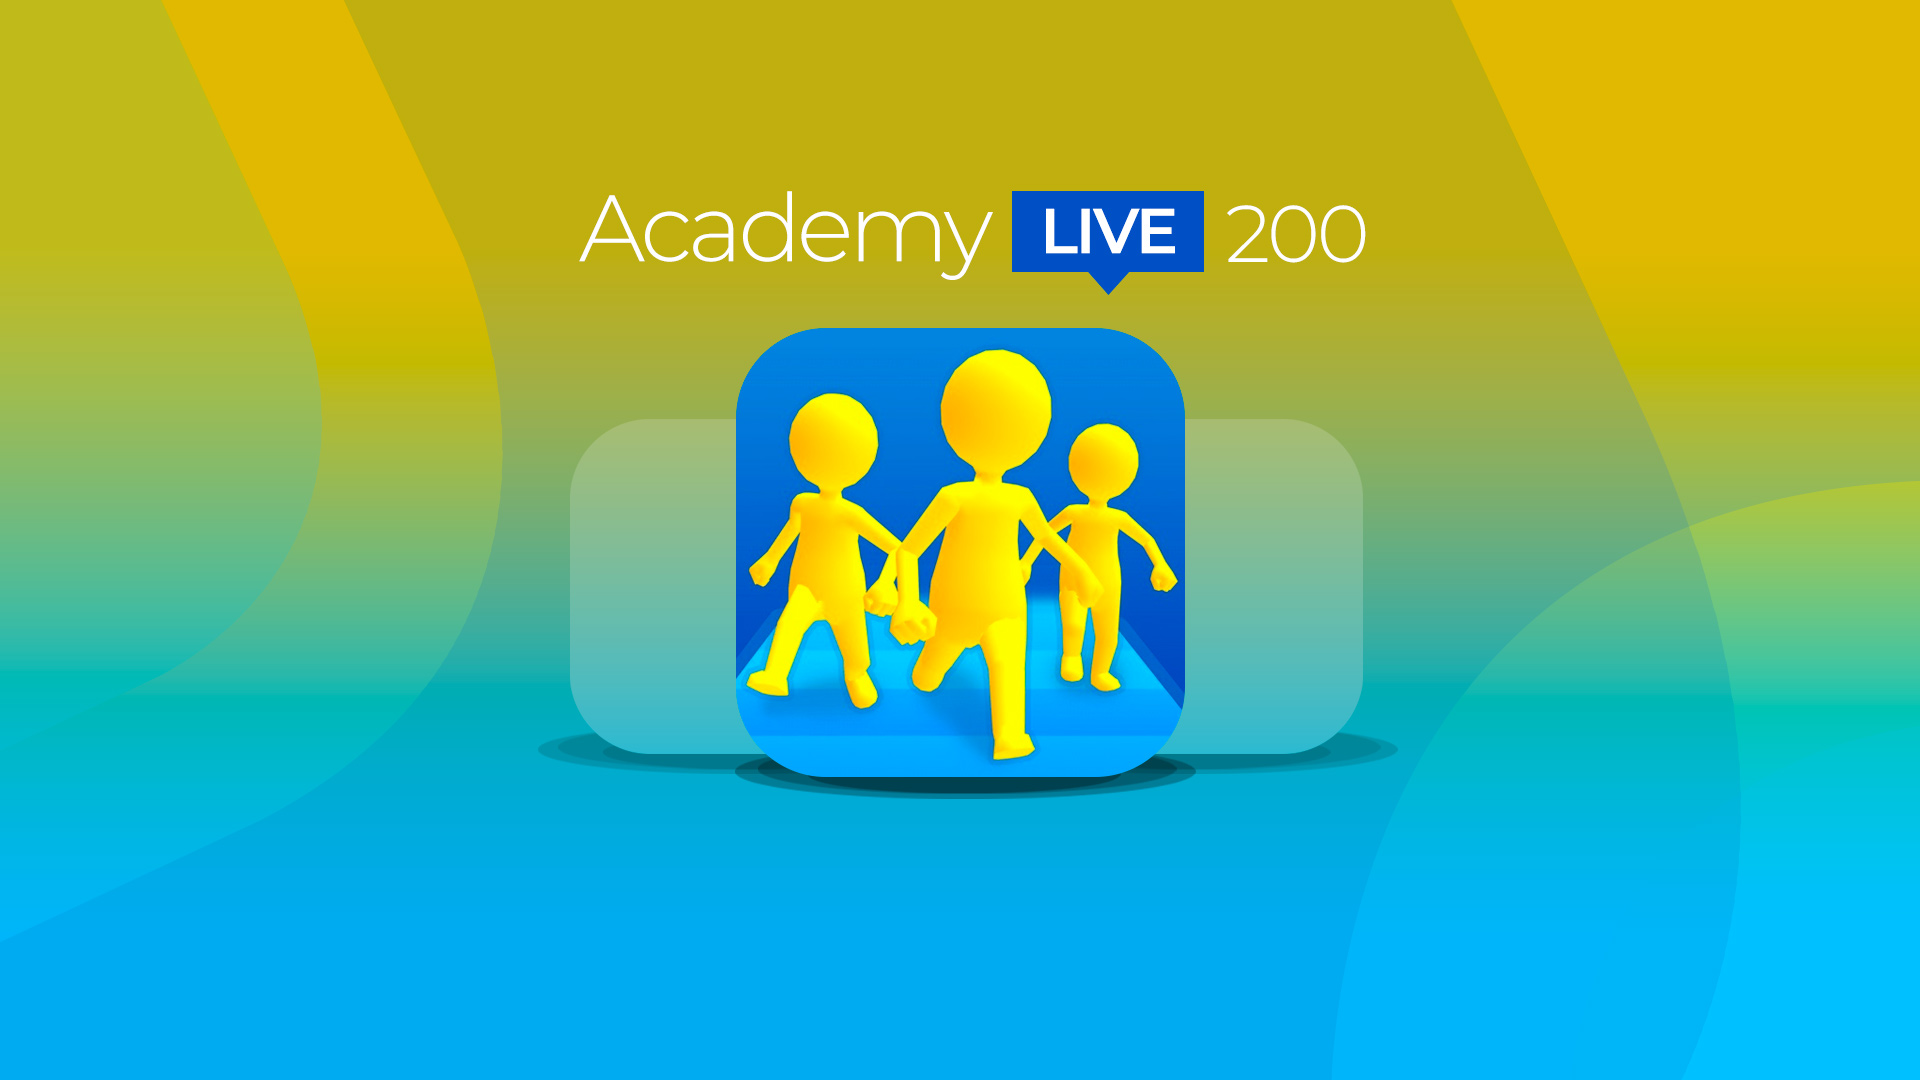 Academy Live 200: Join Clash!